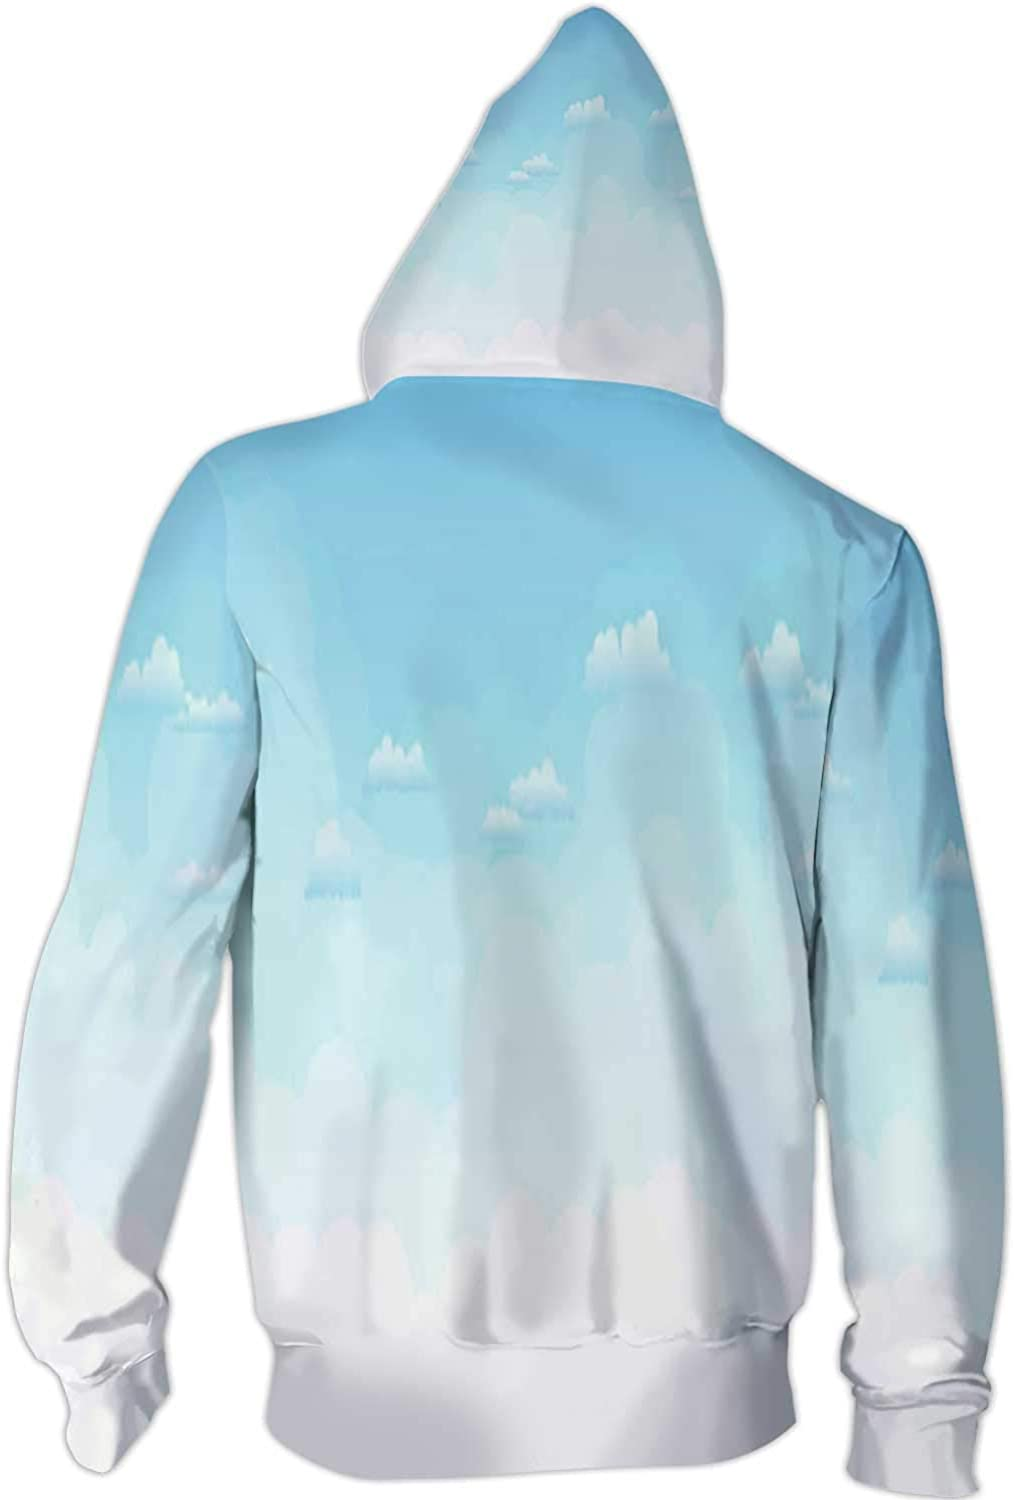 Colorful on a dy Dune Overlooking Tropical Beach,Ladies Full Zip Fleece with Pocket S